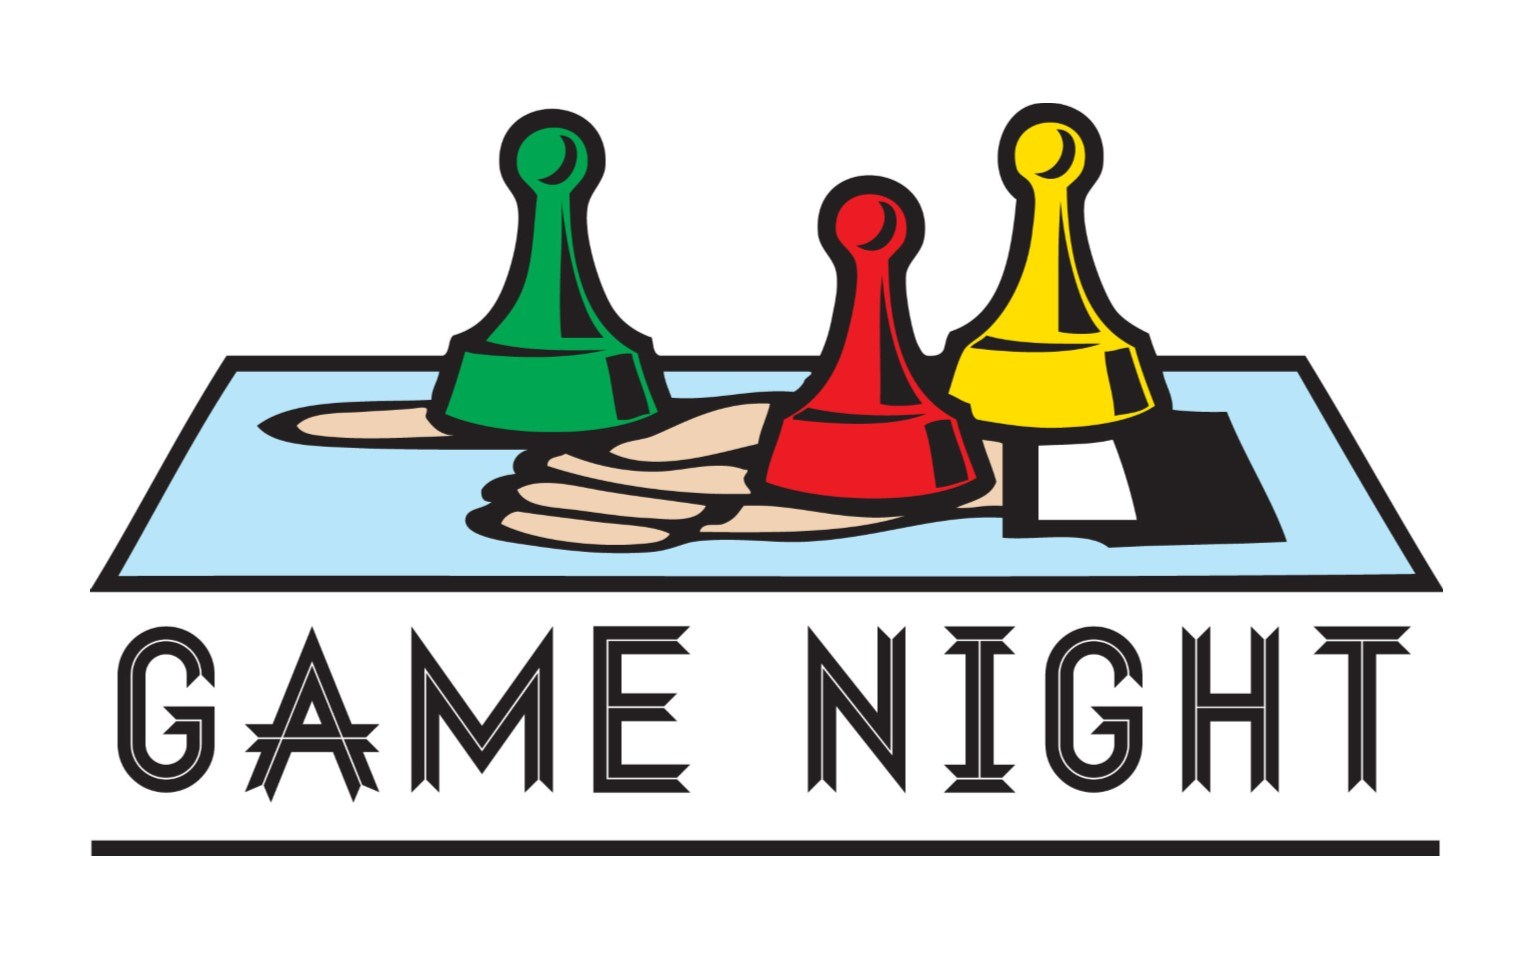 Game clipart game night. Free download best